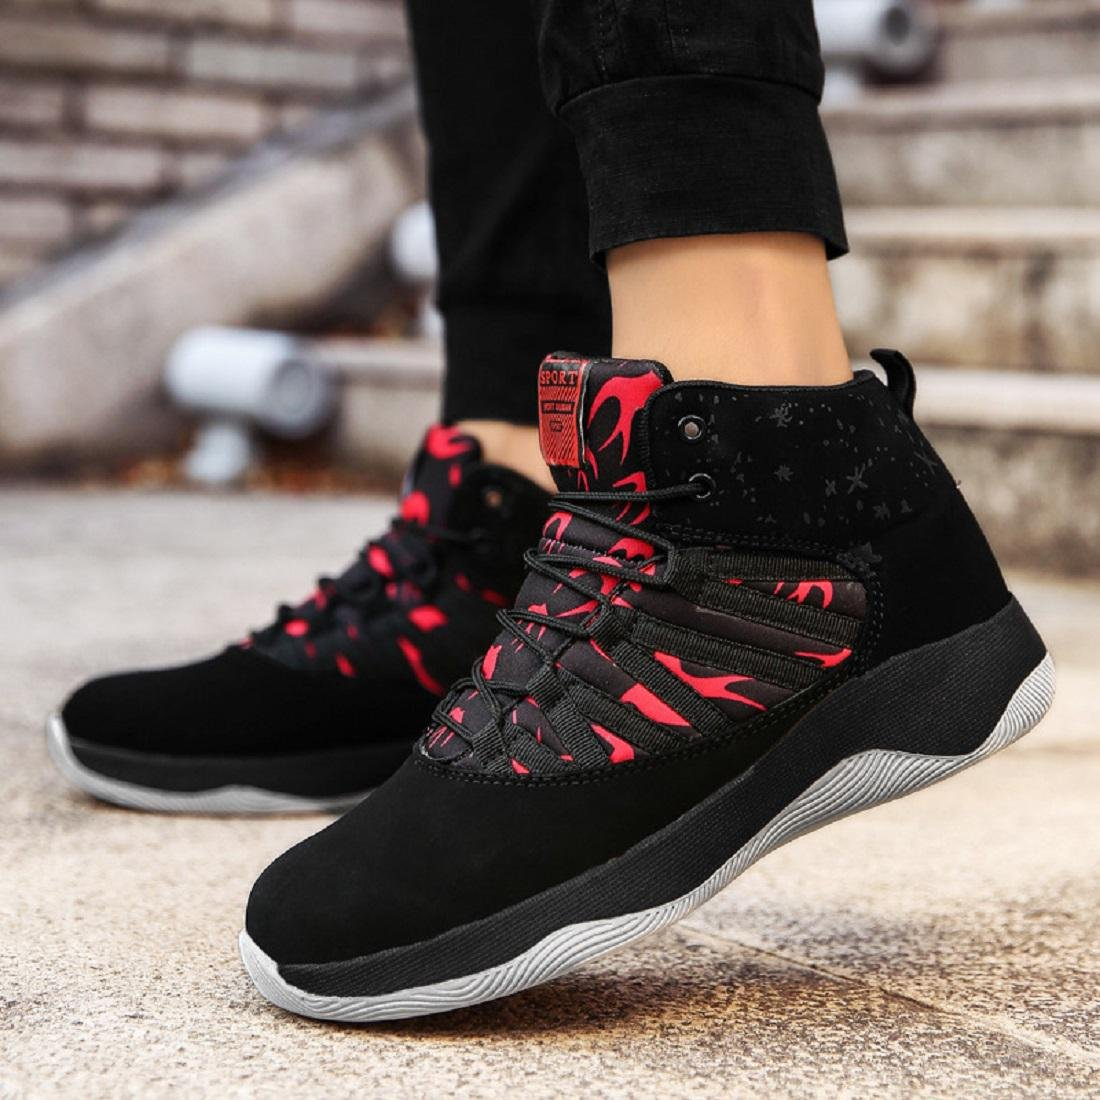 Men's Autumn Winter Fashion Sports shoes Comfortable Keep warm Basketball  shoes Outdoor Running shoes Travel shoes EUR SIZE 39-44: Amazon.co.uk:  Sports & ...